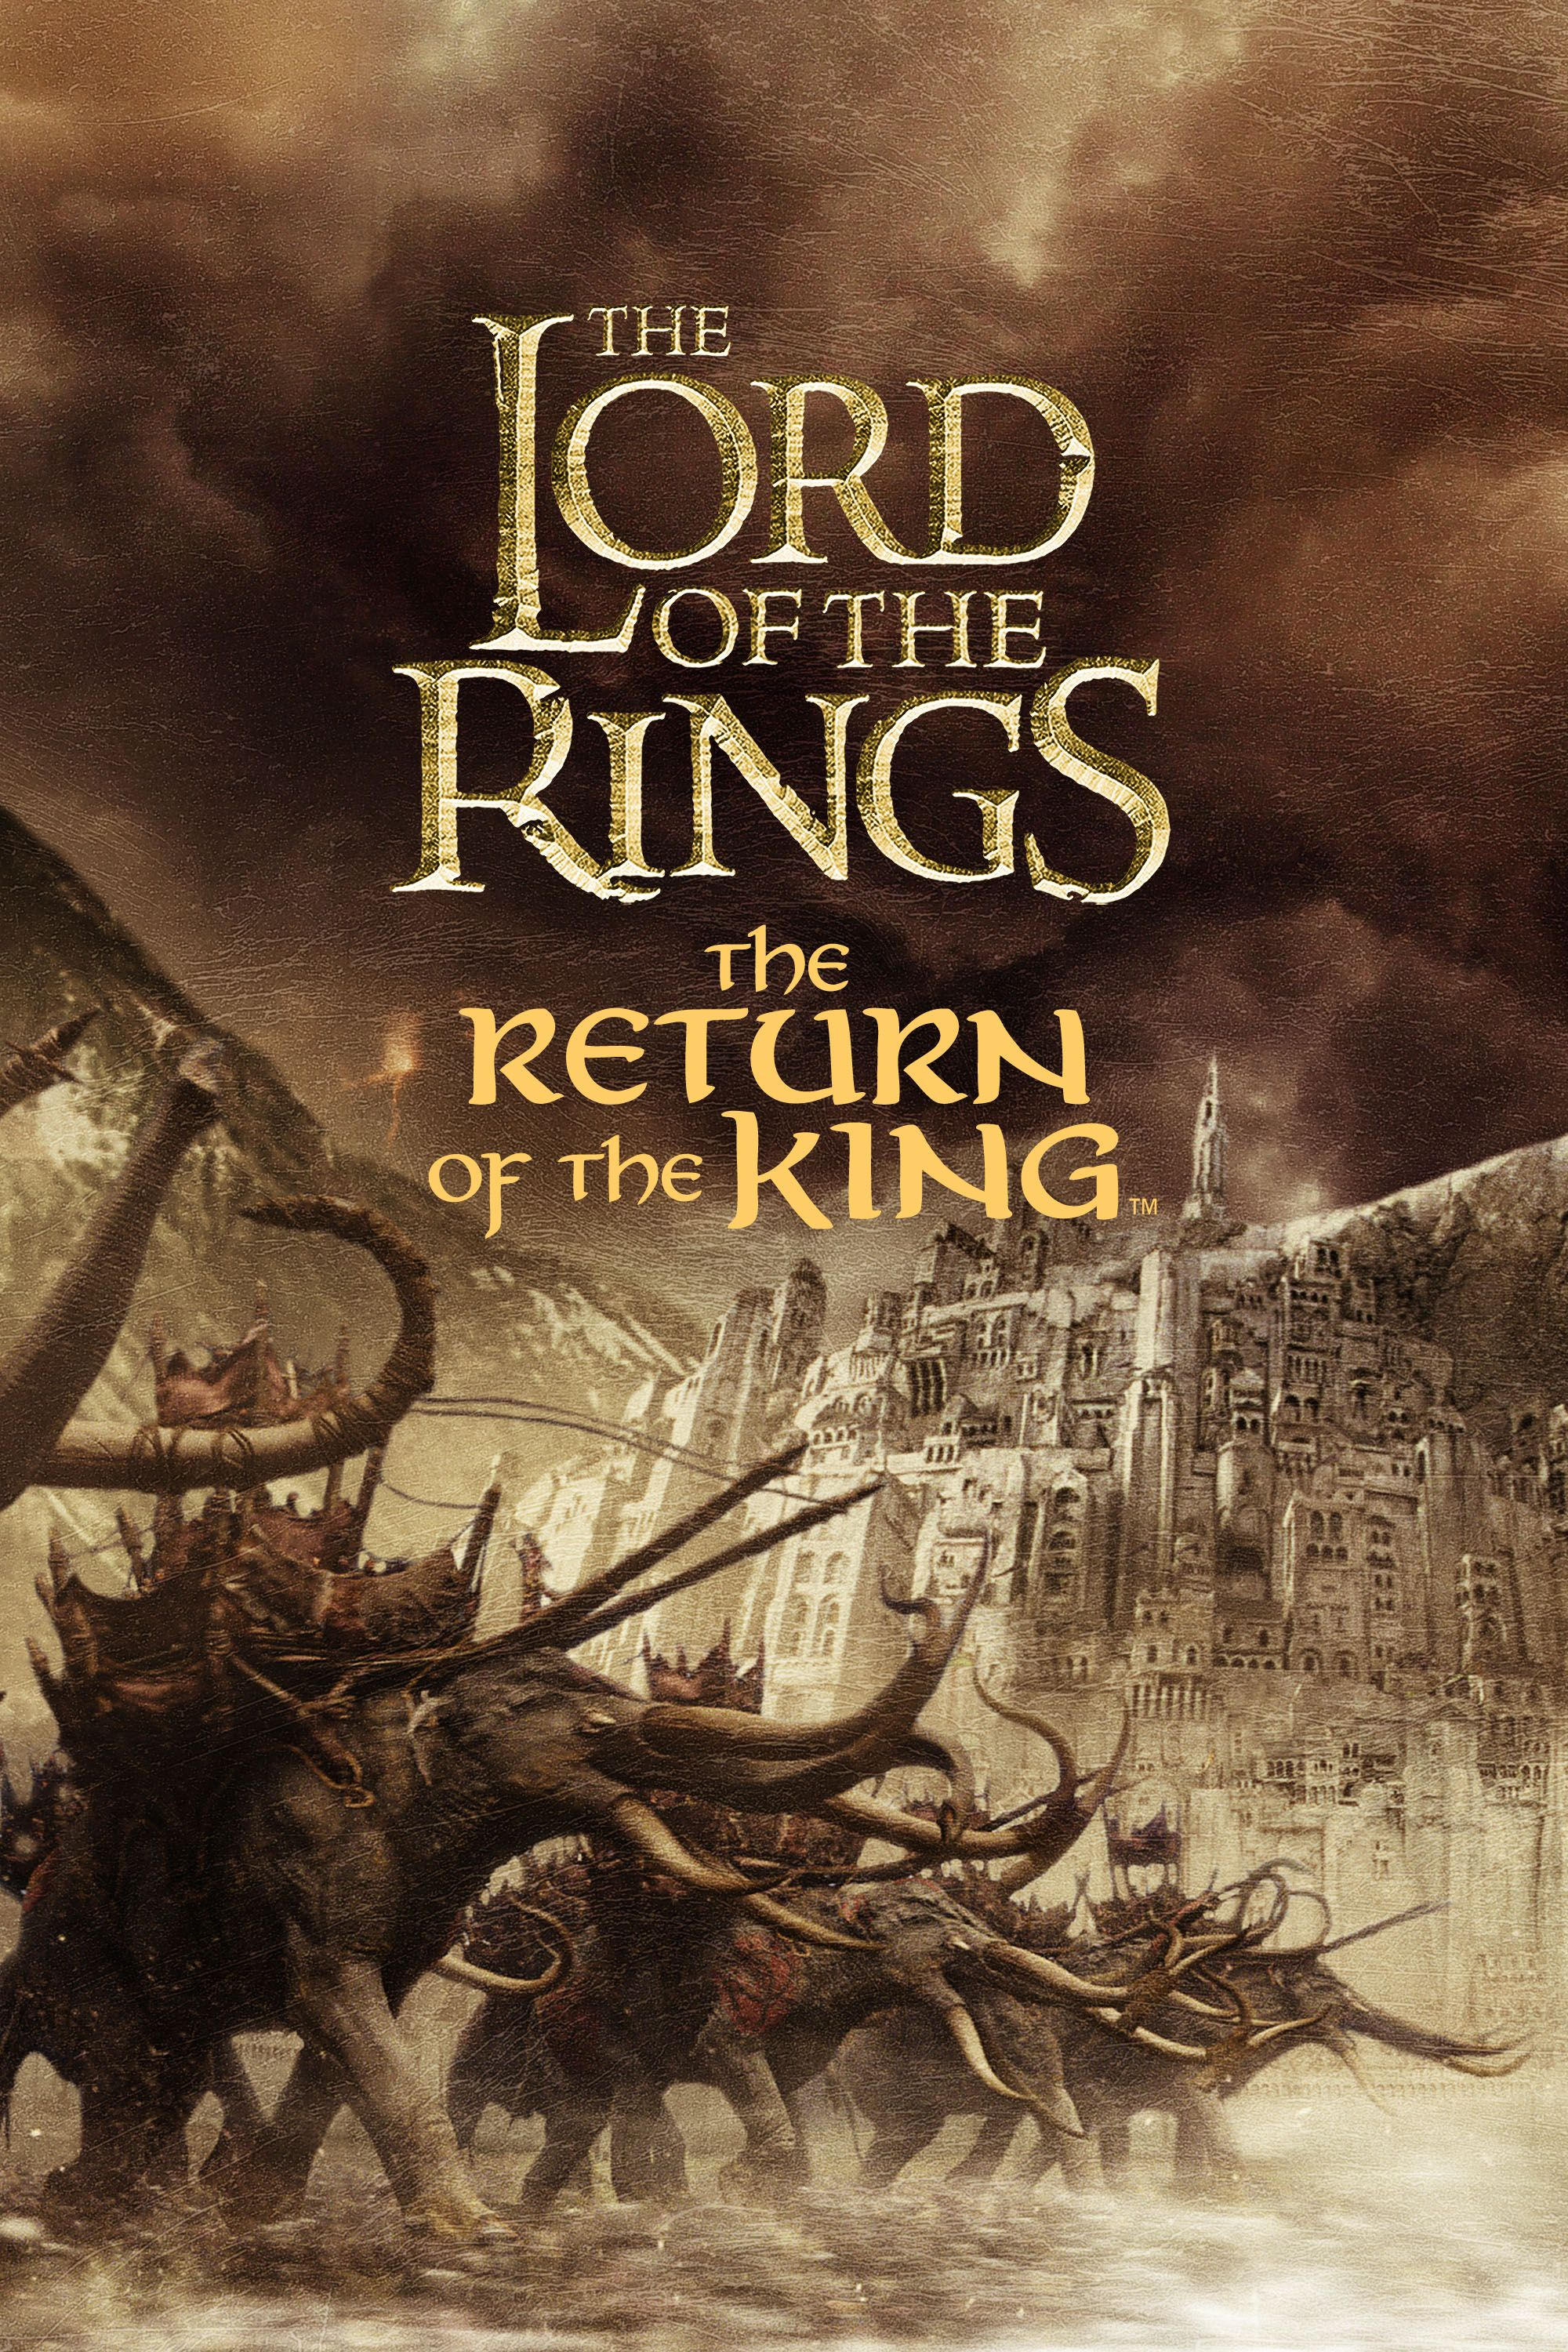 The Lord Of The Rings: The Return Of The King | Full Movie | Movies Anywhere